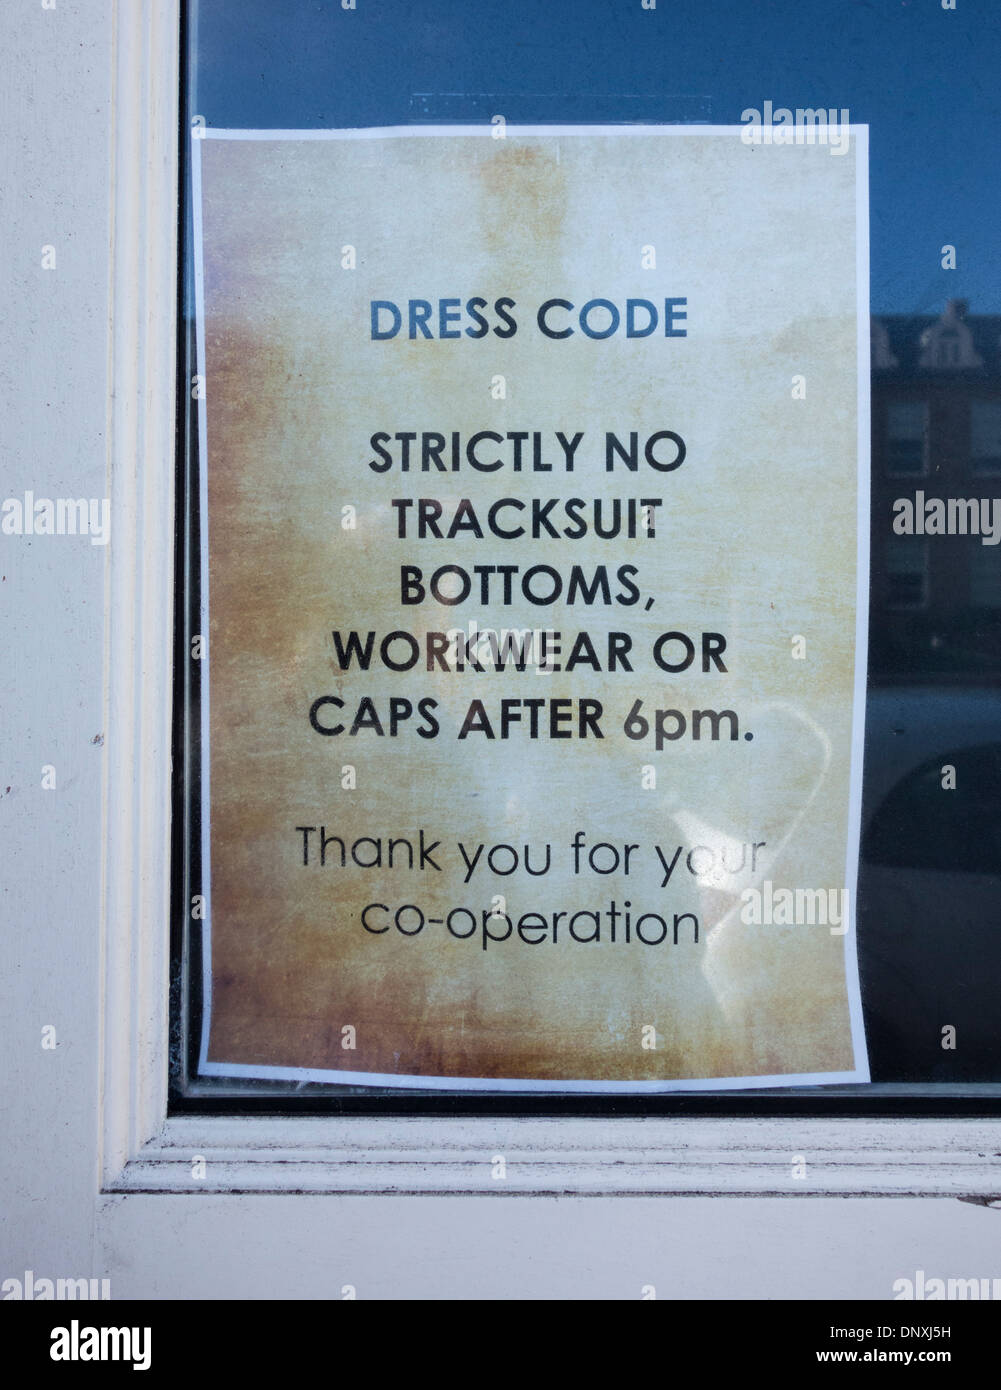 Dress code sign on pub dorr in north east England - Stock Image